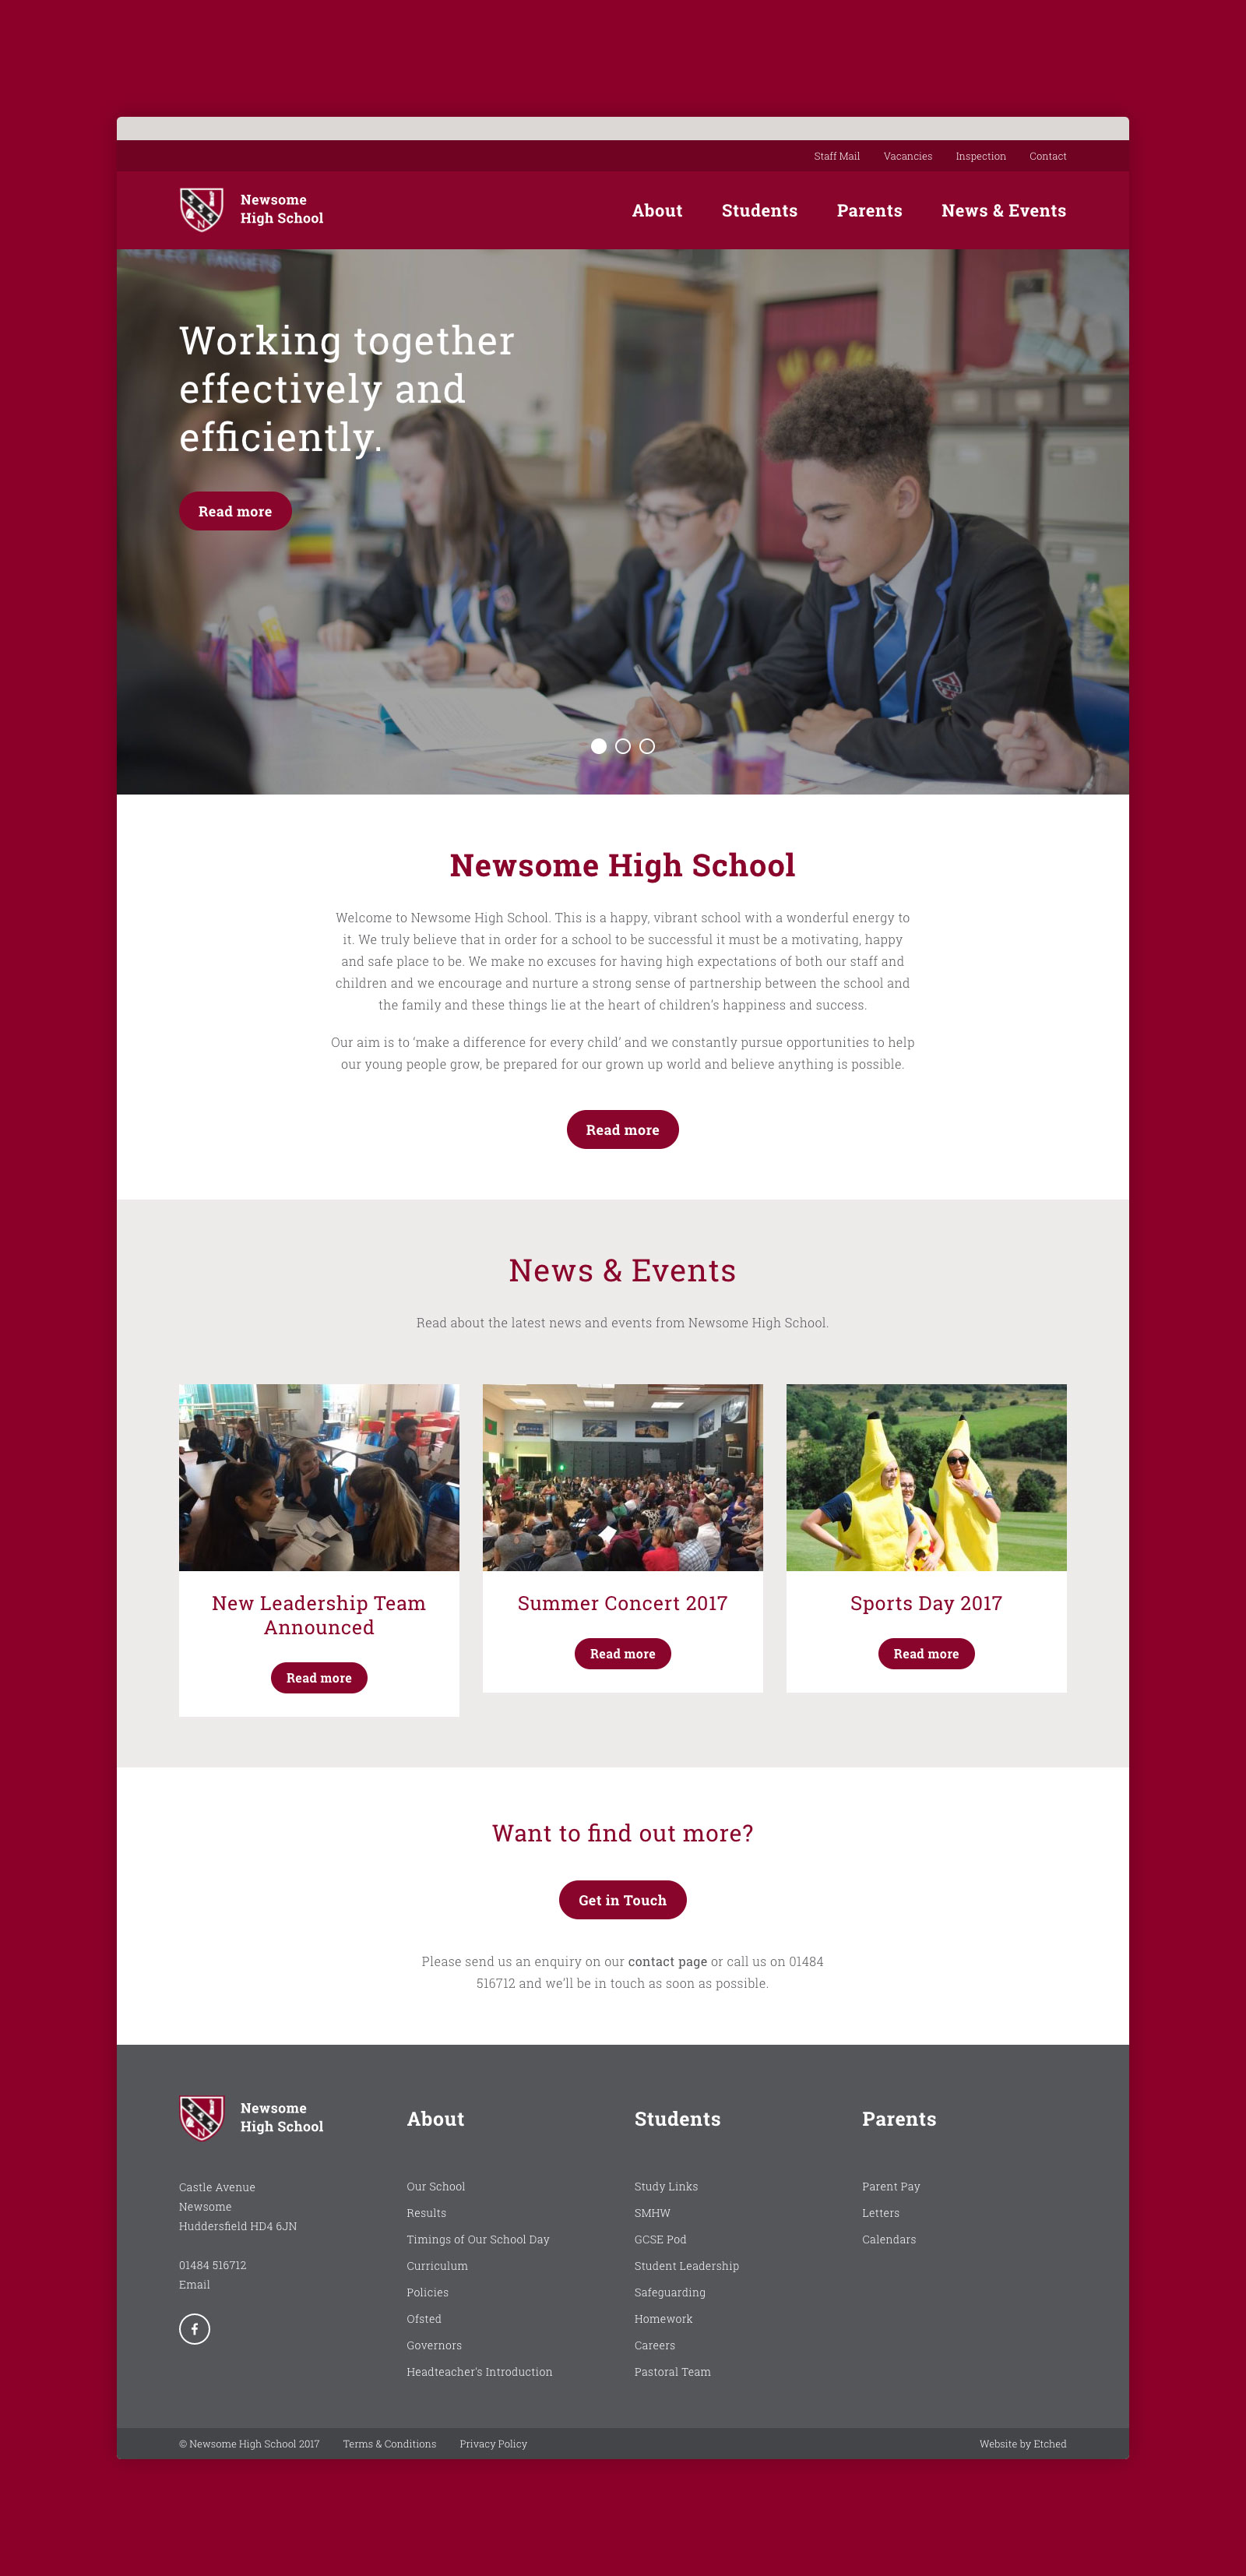 Newsome High School Website Design